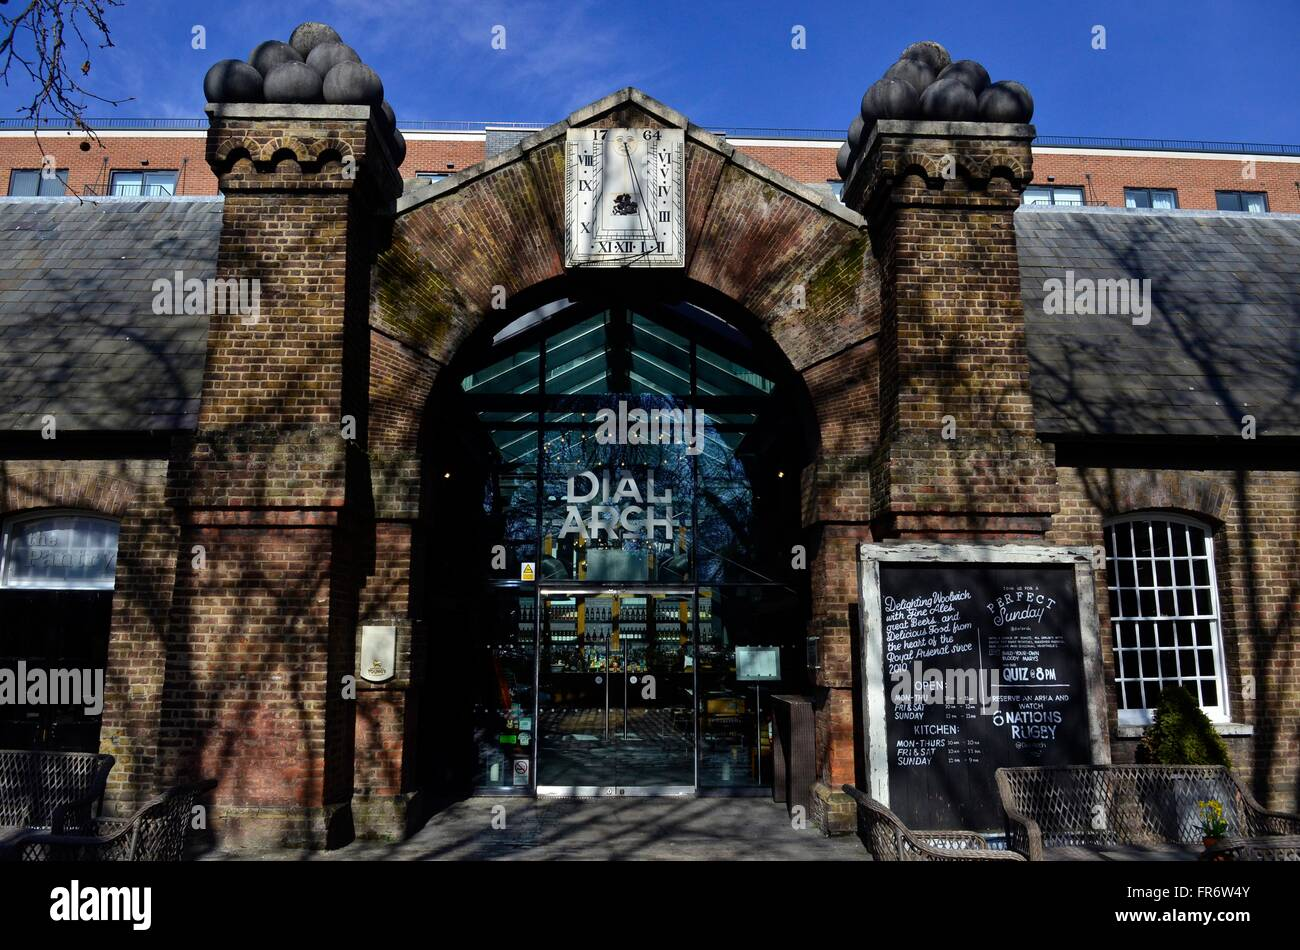 Dial Arch pub, Royal Arsenal, Woolwich, London, England, UK - Stock Image